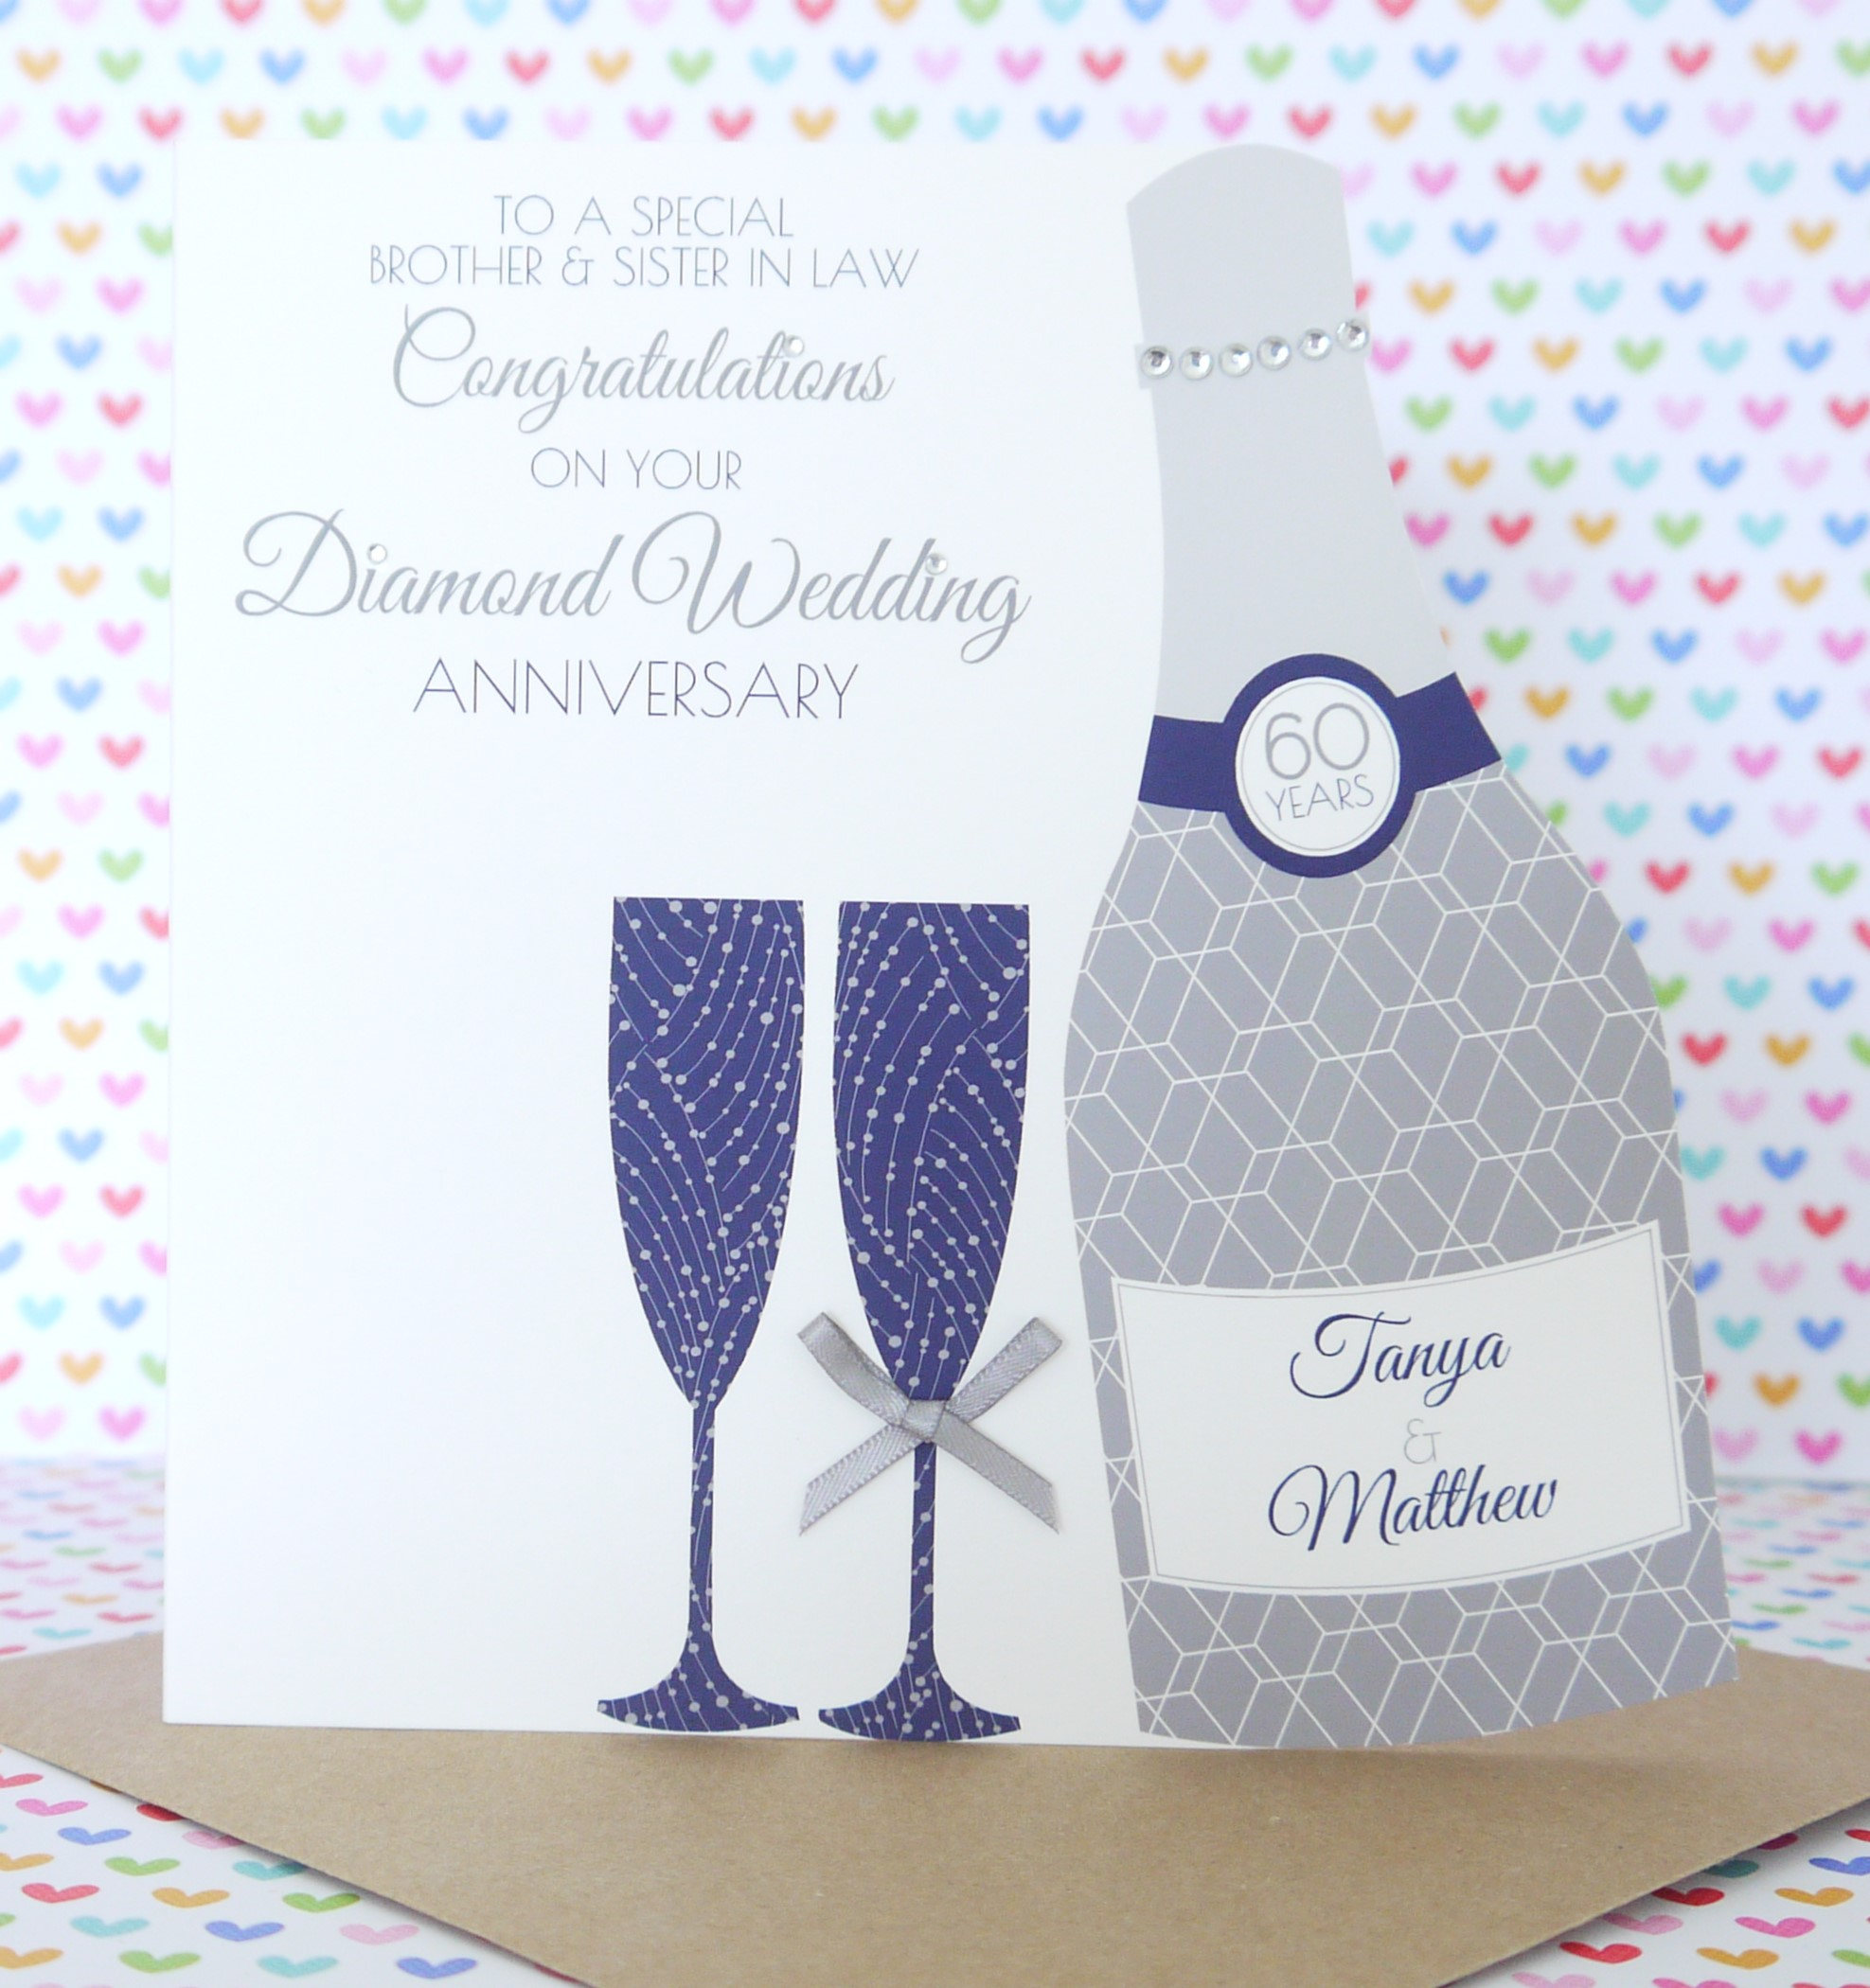 Personalised handmade ruby40th wedding anniversary card creative personalised handmade diamond60th wedding anniversary card kristyandbryce Choice Image